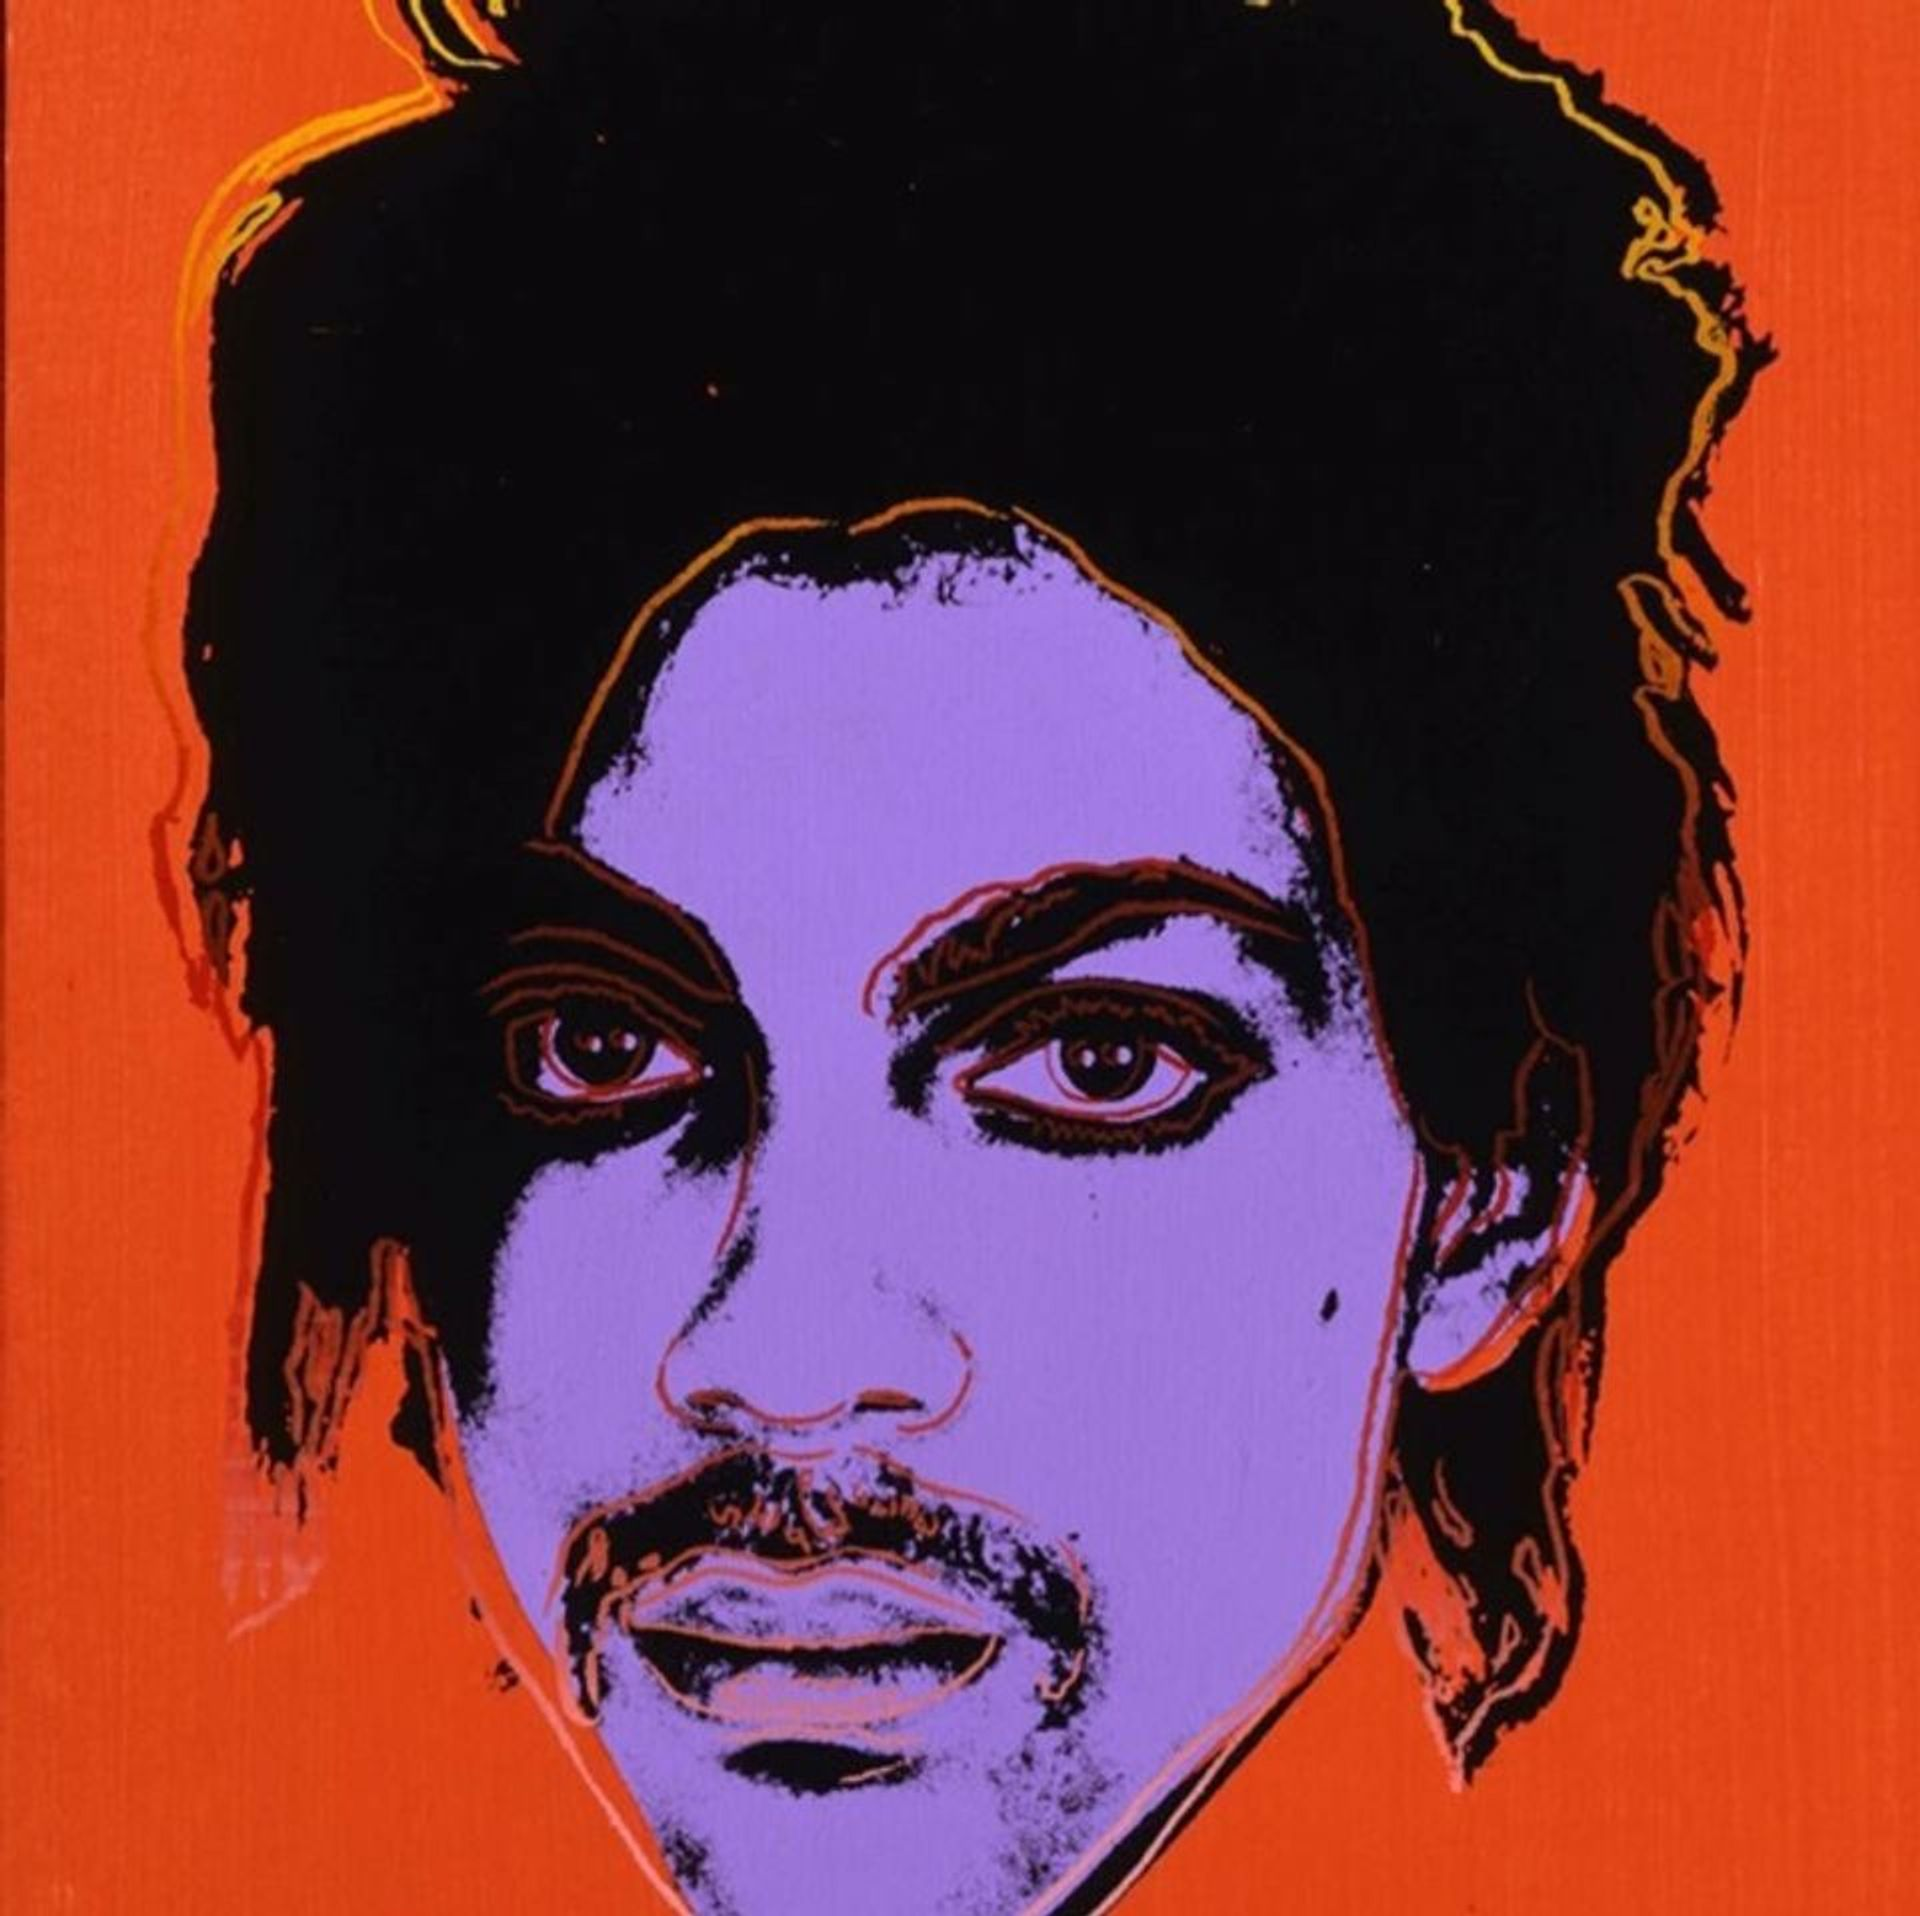 A portrait of Prince by Andy Warhol based on a photograph by Lynn Goldsmith